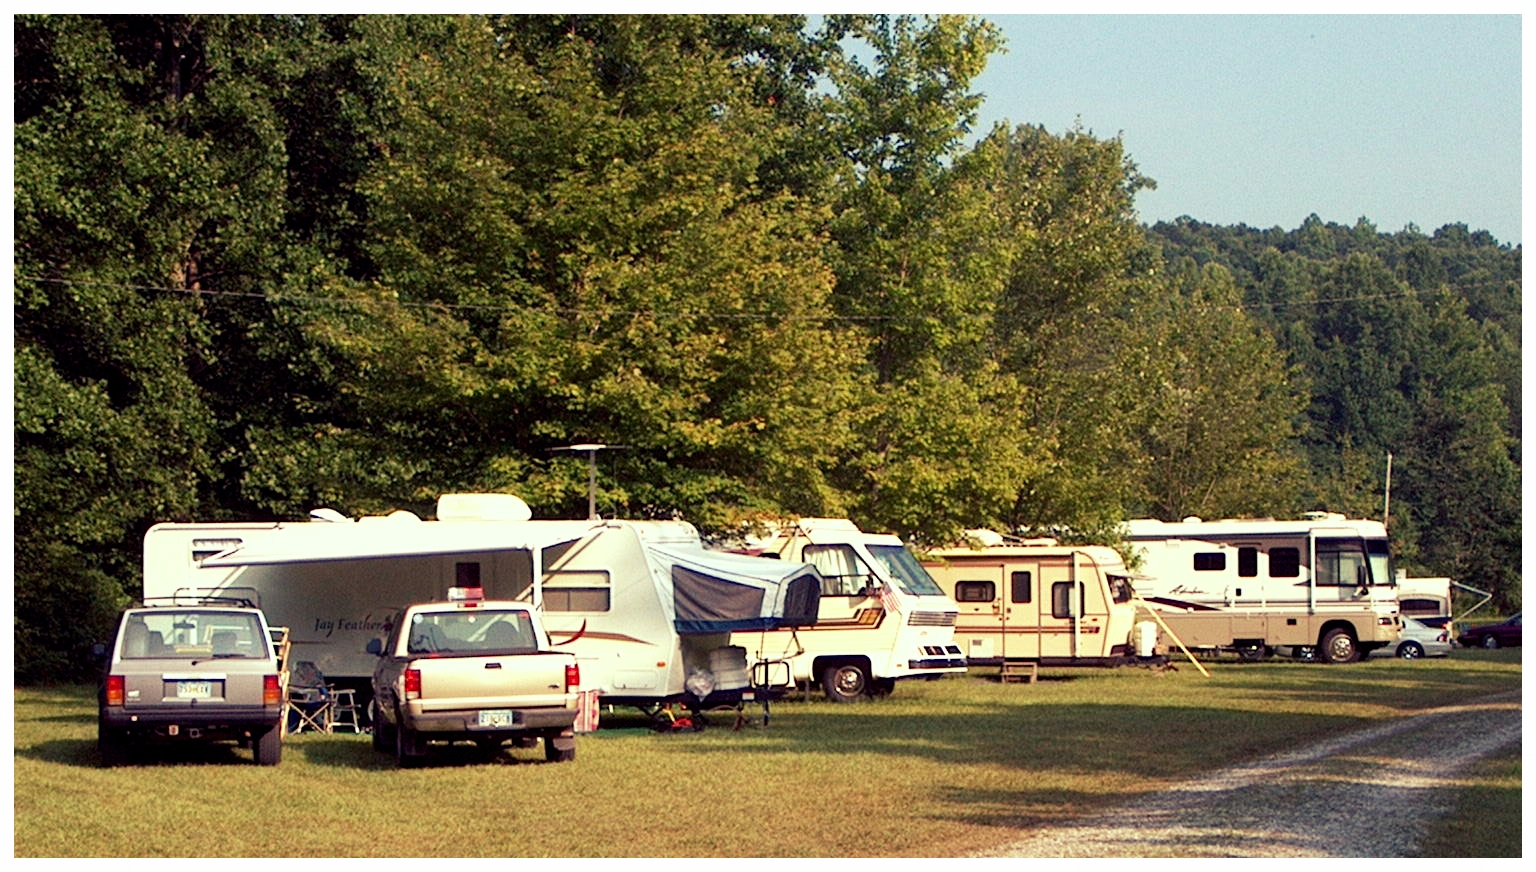 The Campground - Running parallel to the creek bed is our 22 site campground. Each site is equipped with brand new (2019) water and electric hook ups. There is also a dump station located nearby. The bathhouses and picnic shelter are both in close walking distance to the campground.Rental Cost: RVs- $25/night, Tents- $16/night